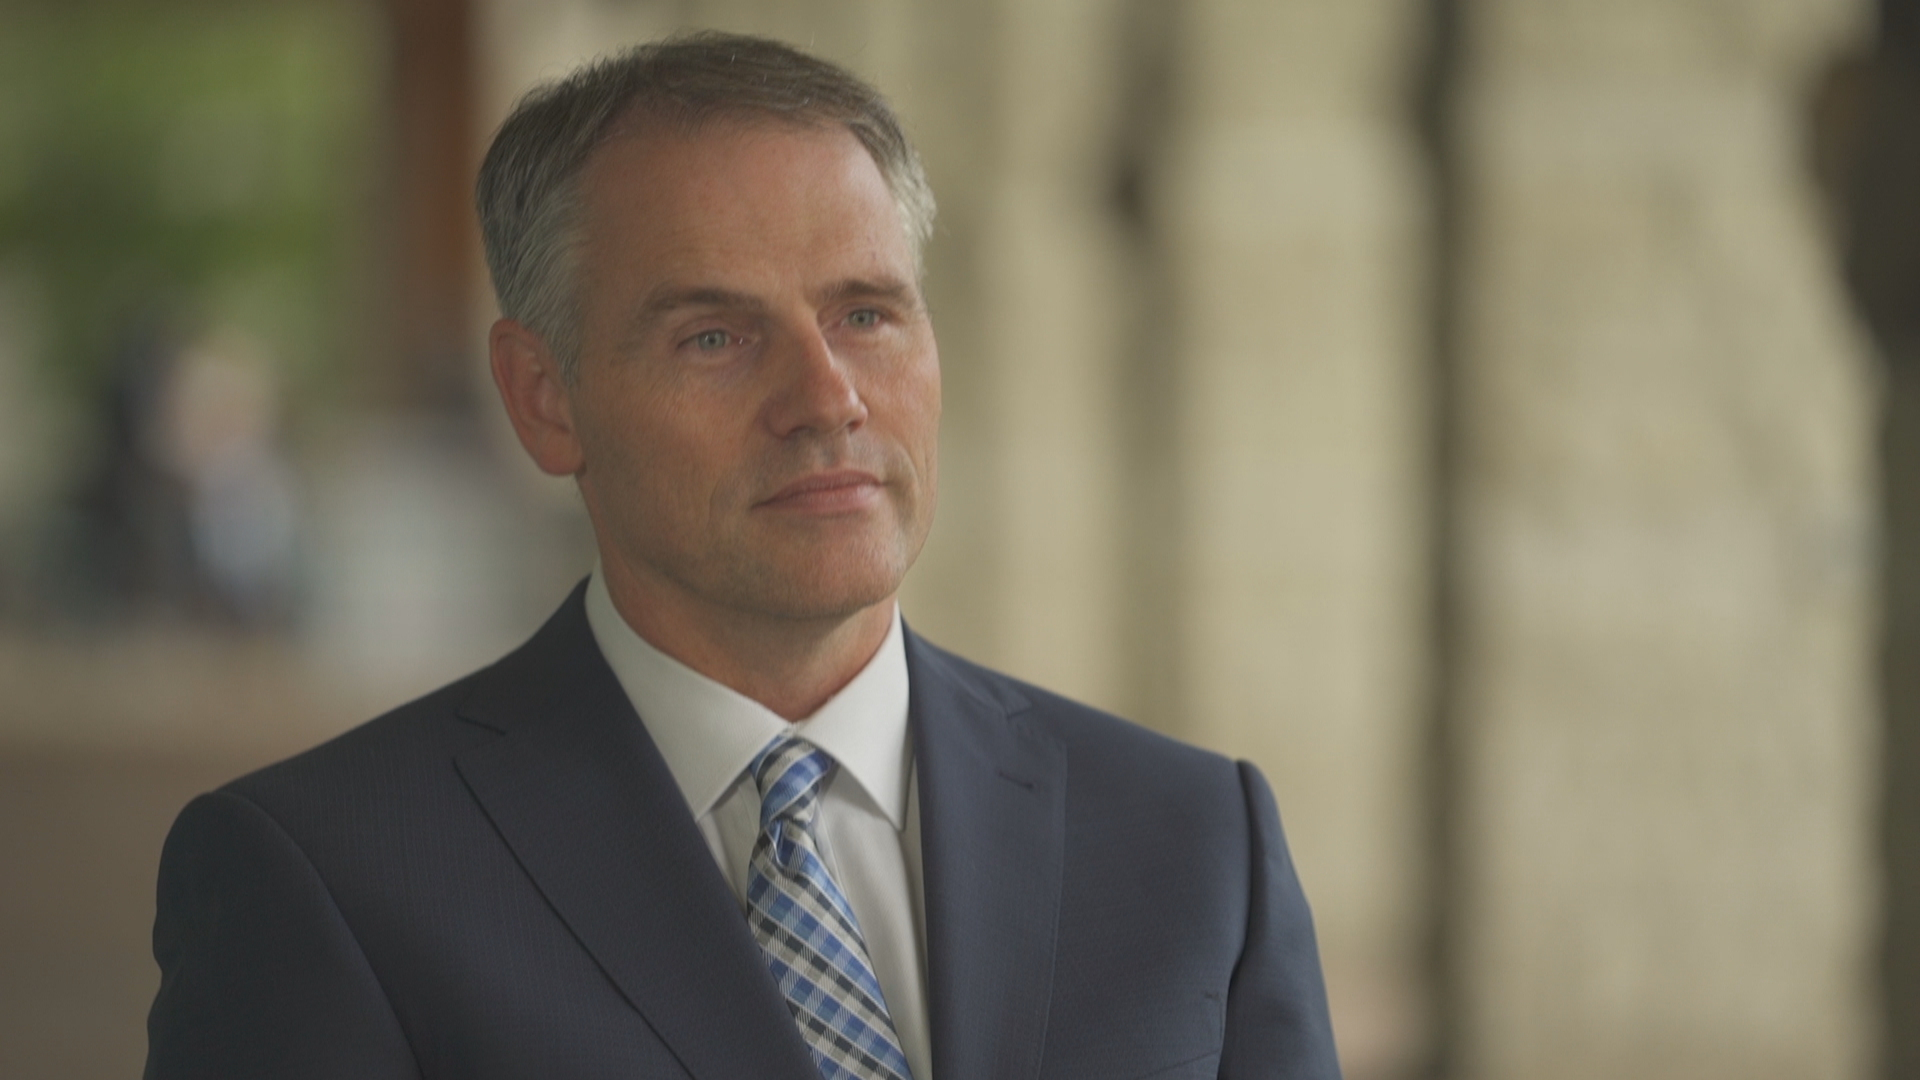 Human rights lawyer Paul Champ represents Jennifer Van Der Zander in her sexual harassment complaint against Ottawa police Deputy Chief Uday Jaswal. (Jean-François Benoît/CBC)